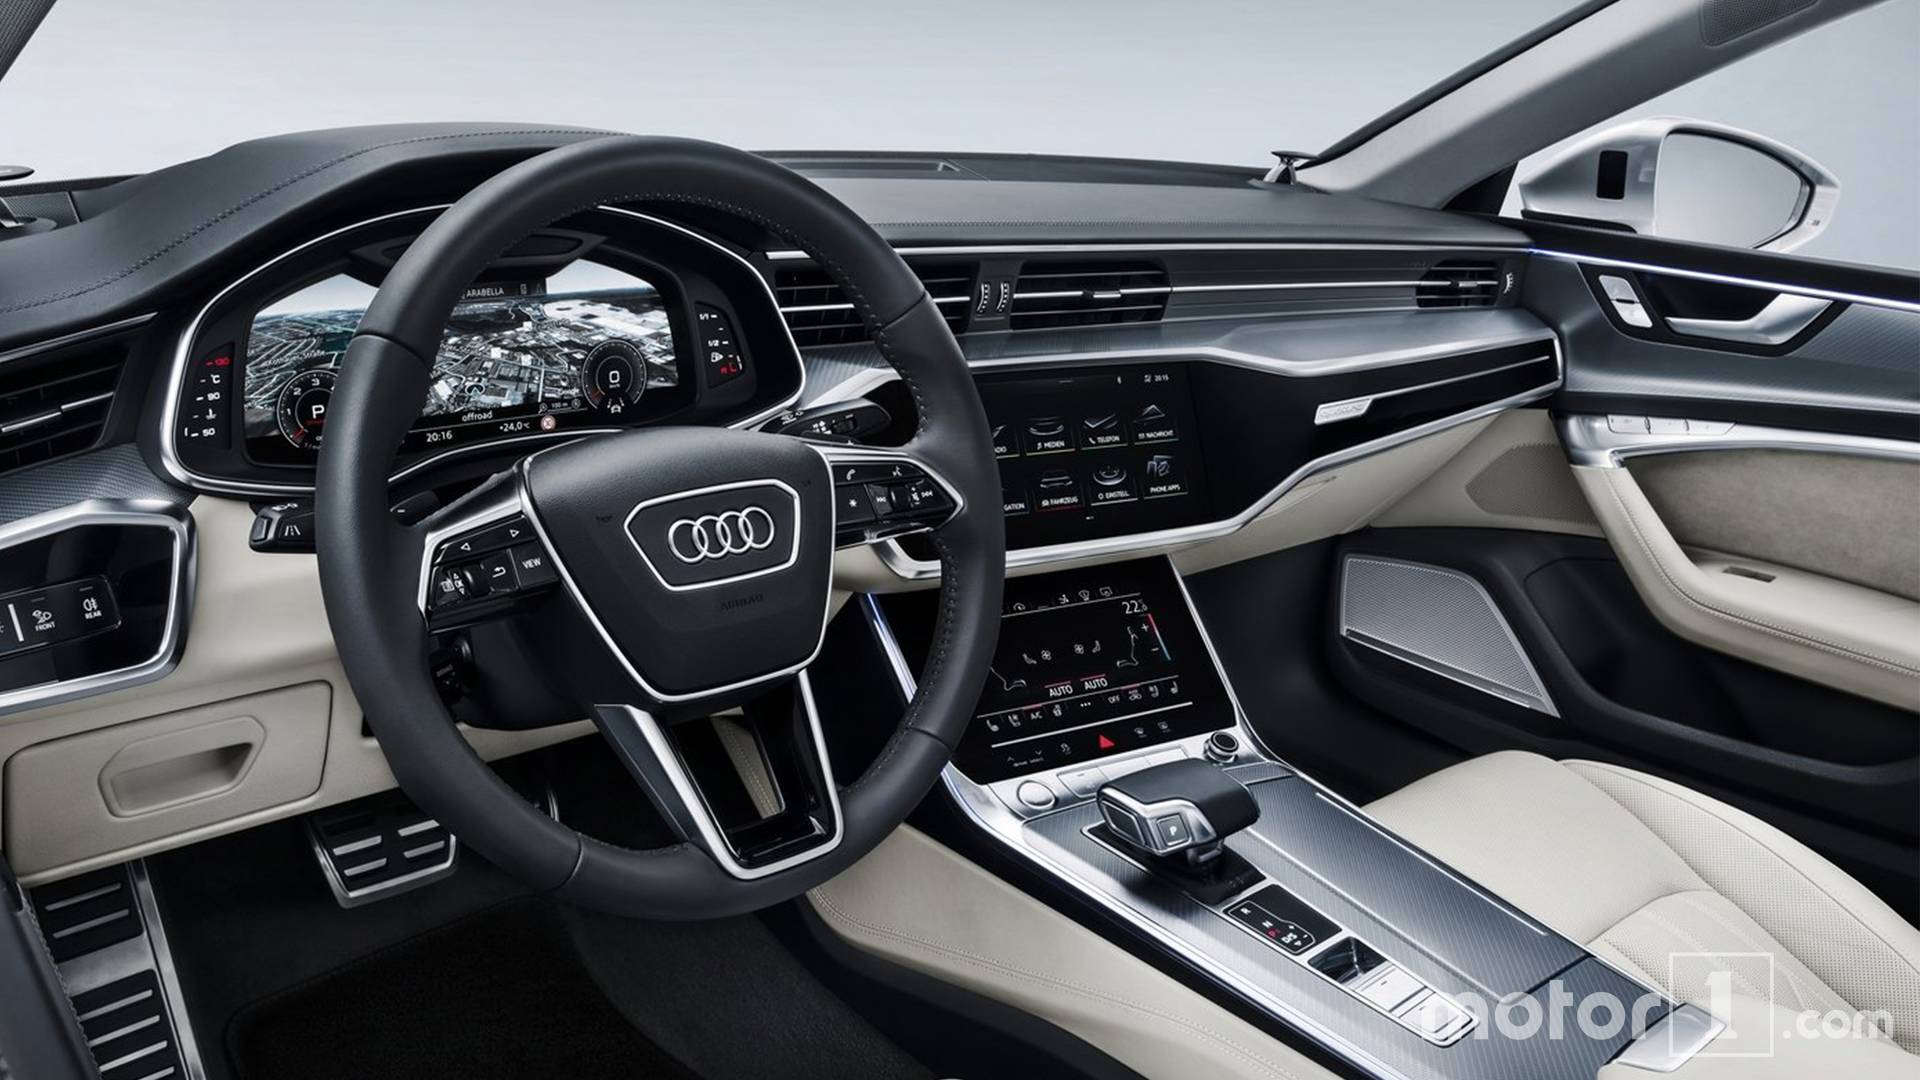 See the 2018 Audi A7 side-by-side with the old model